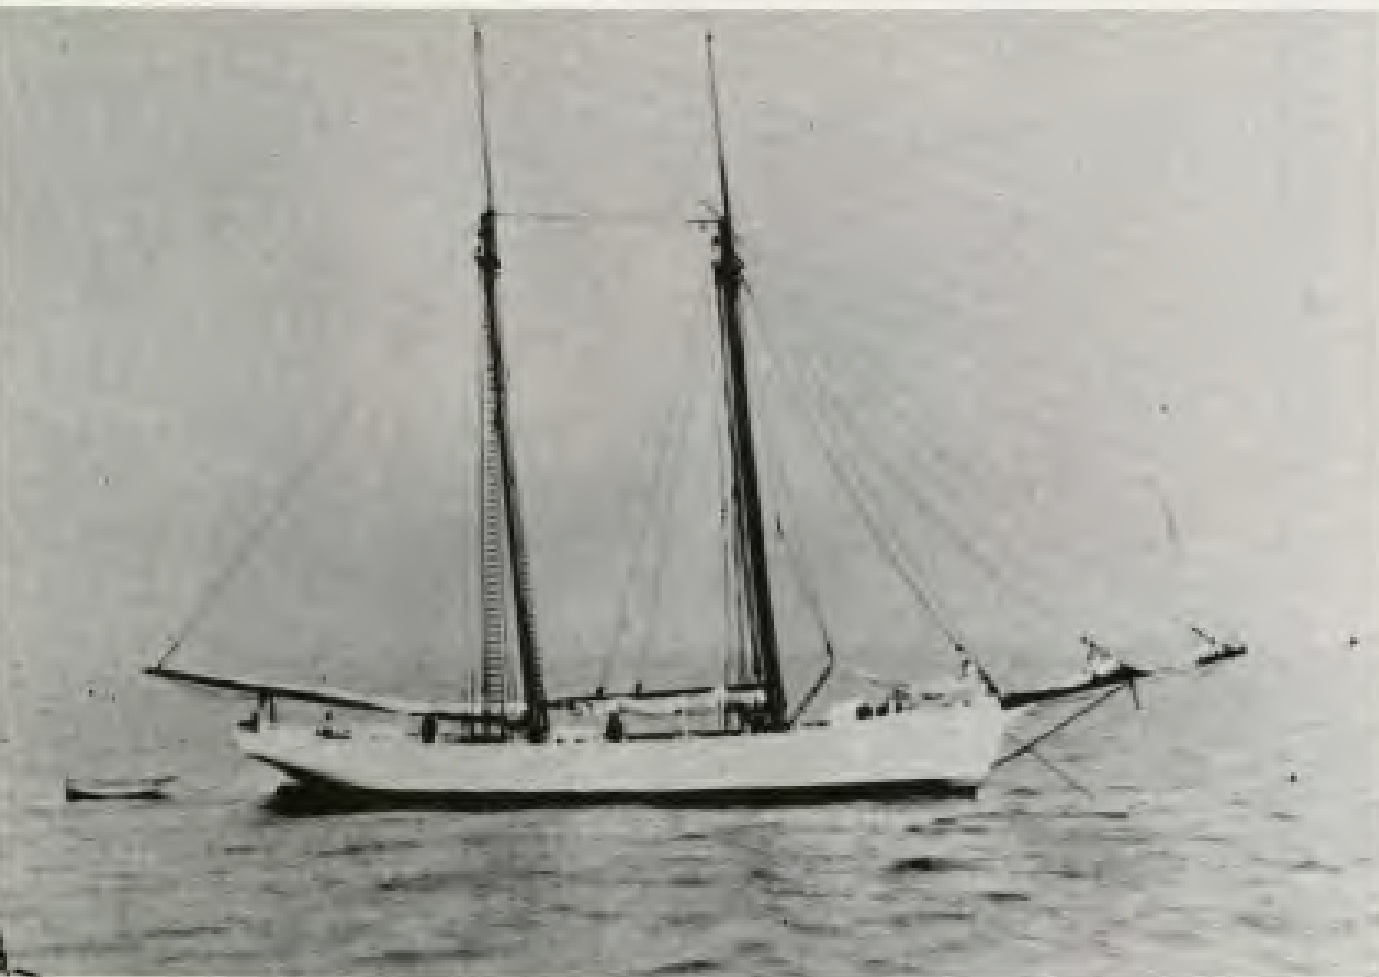 The Adventist schooner Pitcairn before being upgraded, 1890. The berths, galley, and cabin were all below deck.